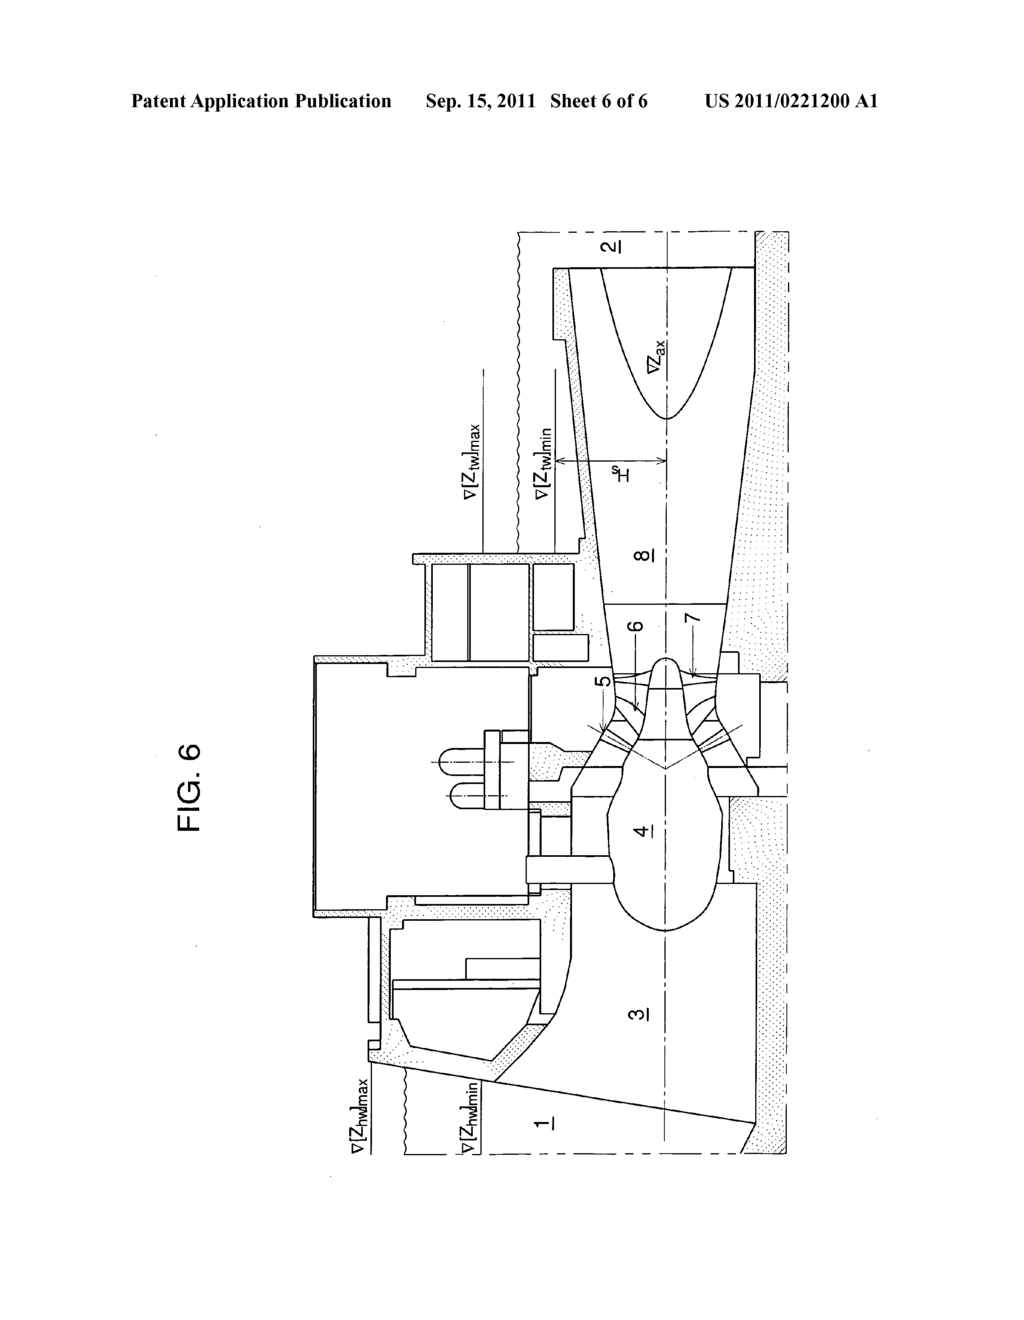 hight resolution of two way generation tidal power plant with bypasses diagram schematic and image 07